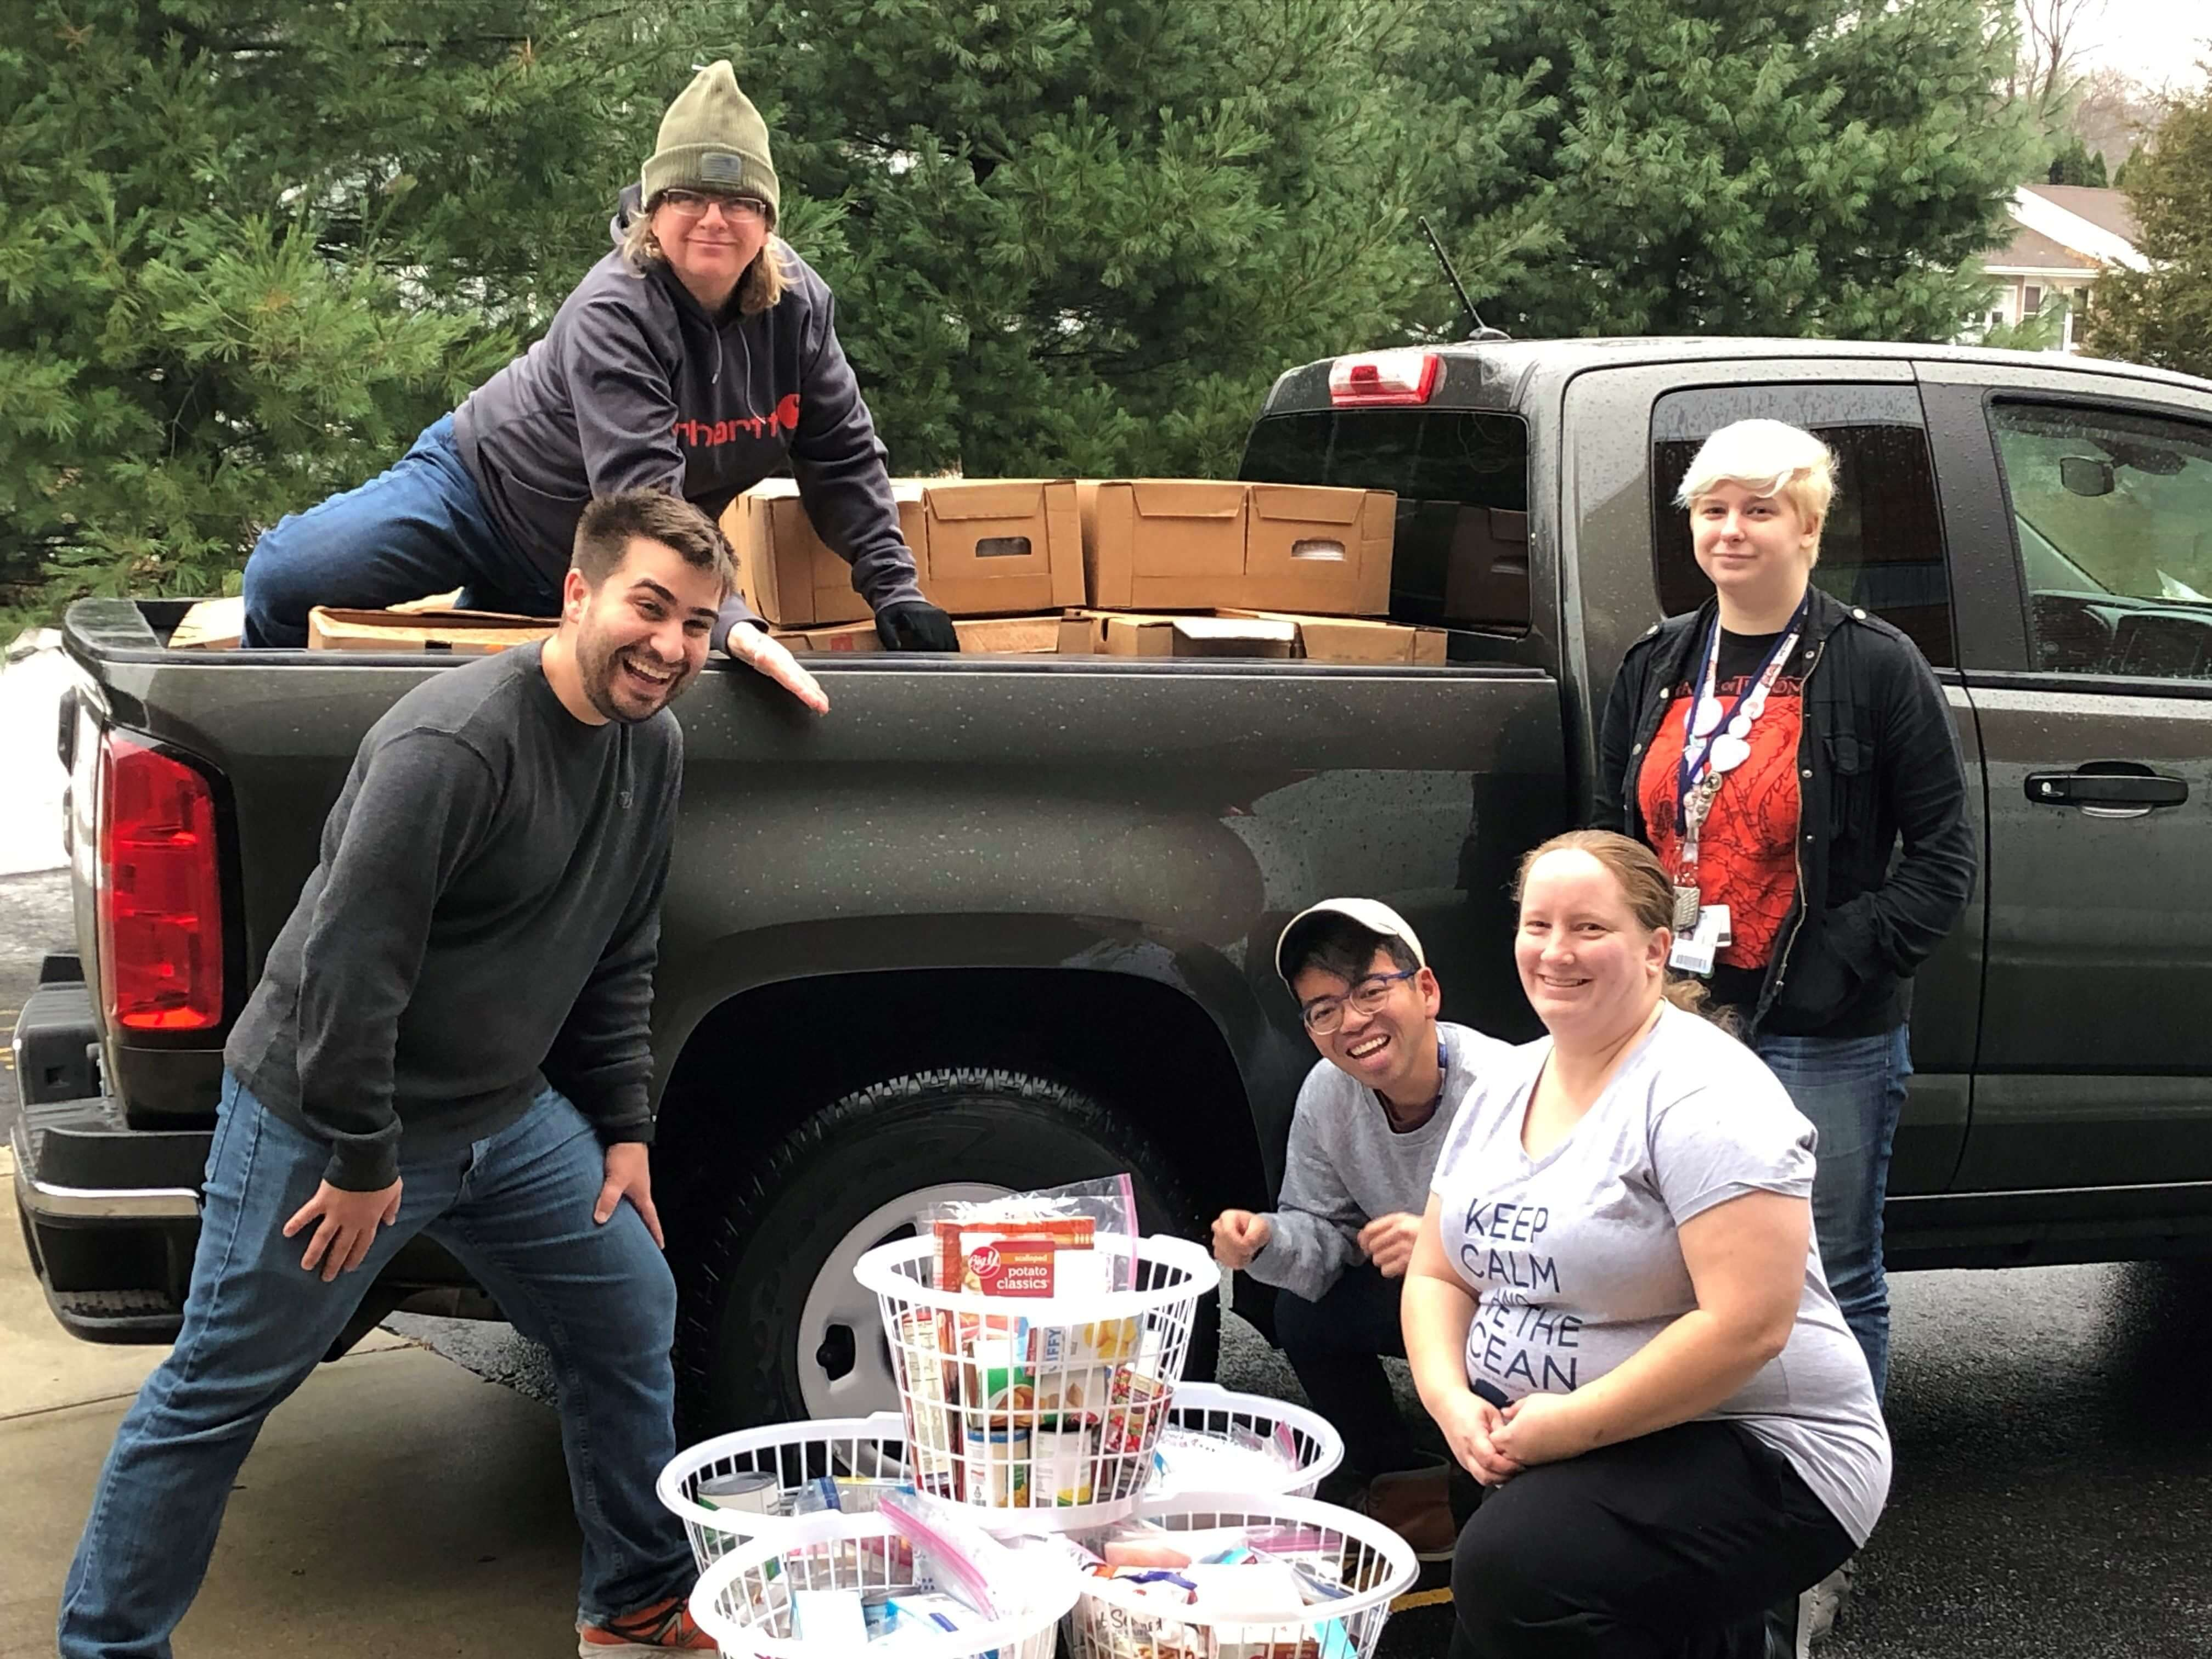 Three Rivers Community College students Cody Sowell, Thena Cranfill, Joe Victorino, Marie Parry and Samantha Bartosiak load a pick-up truck with turkeys and Thanksgiving fixings to bring to the Norwich Vet Center.